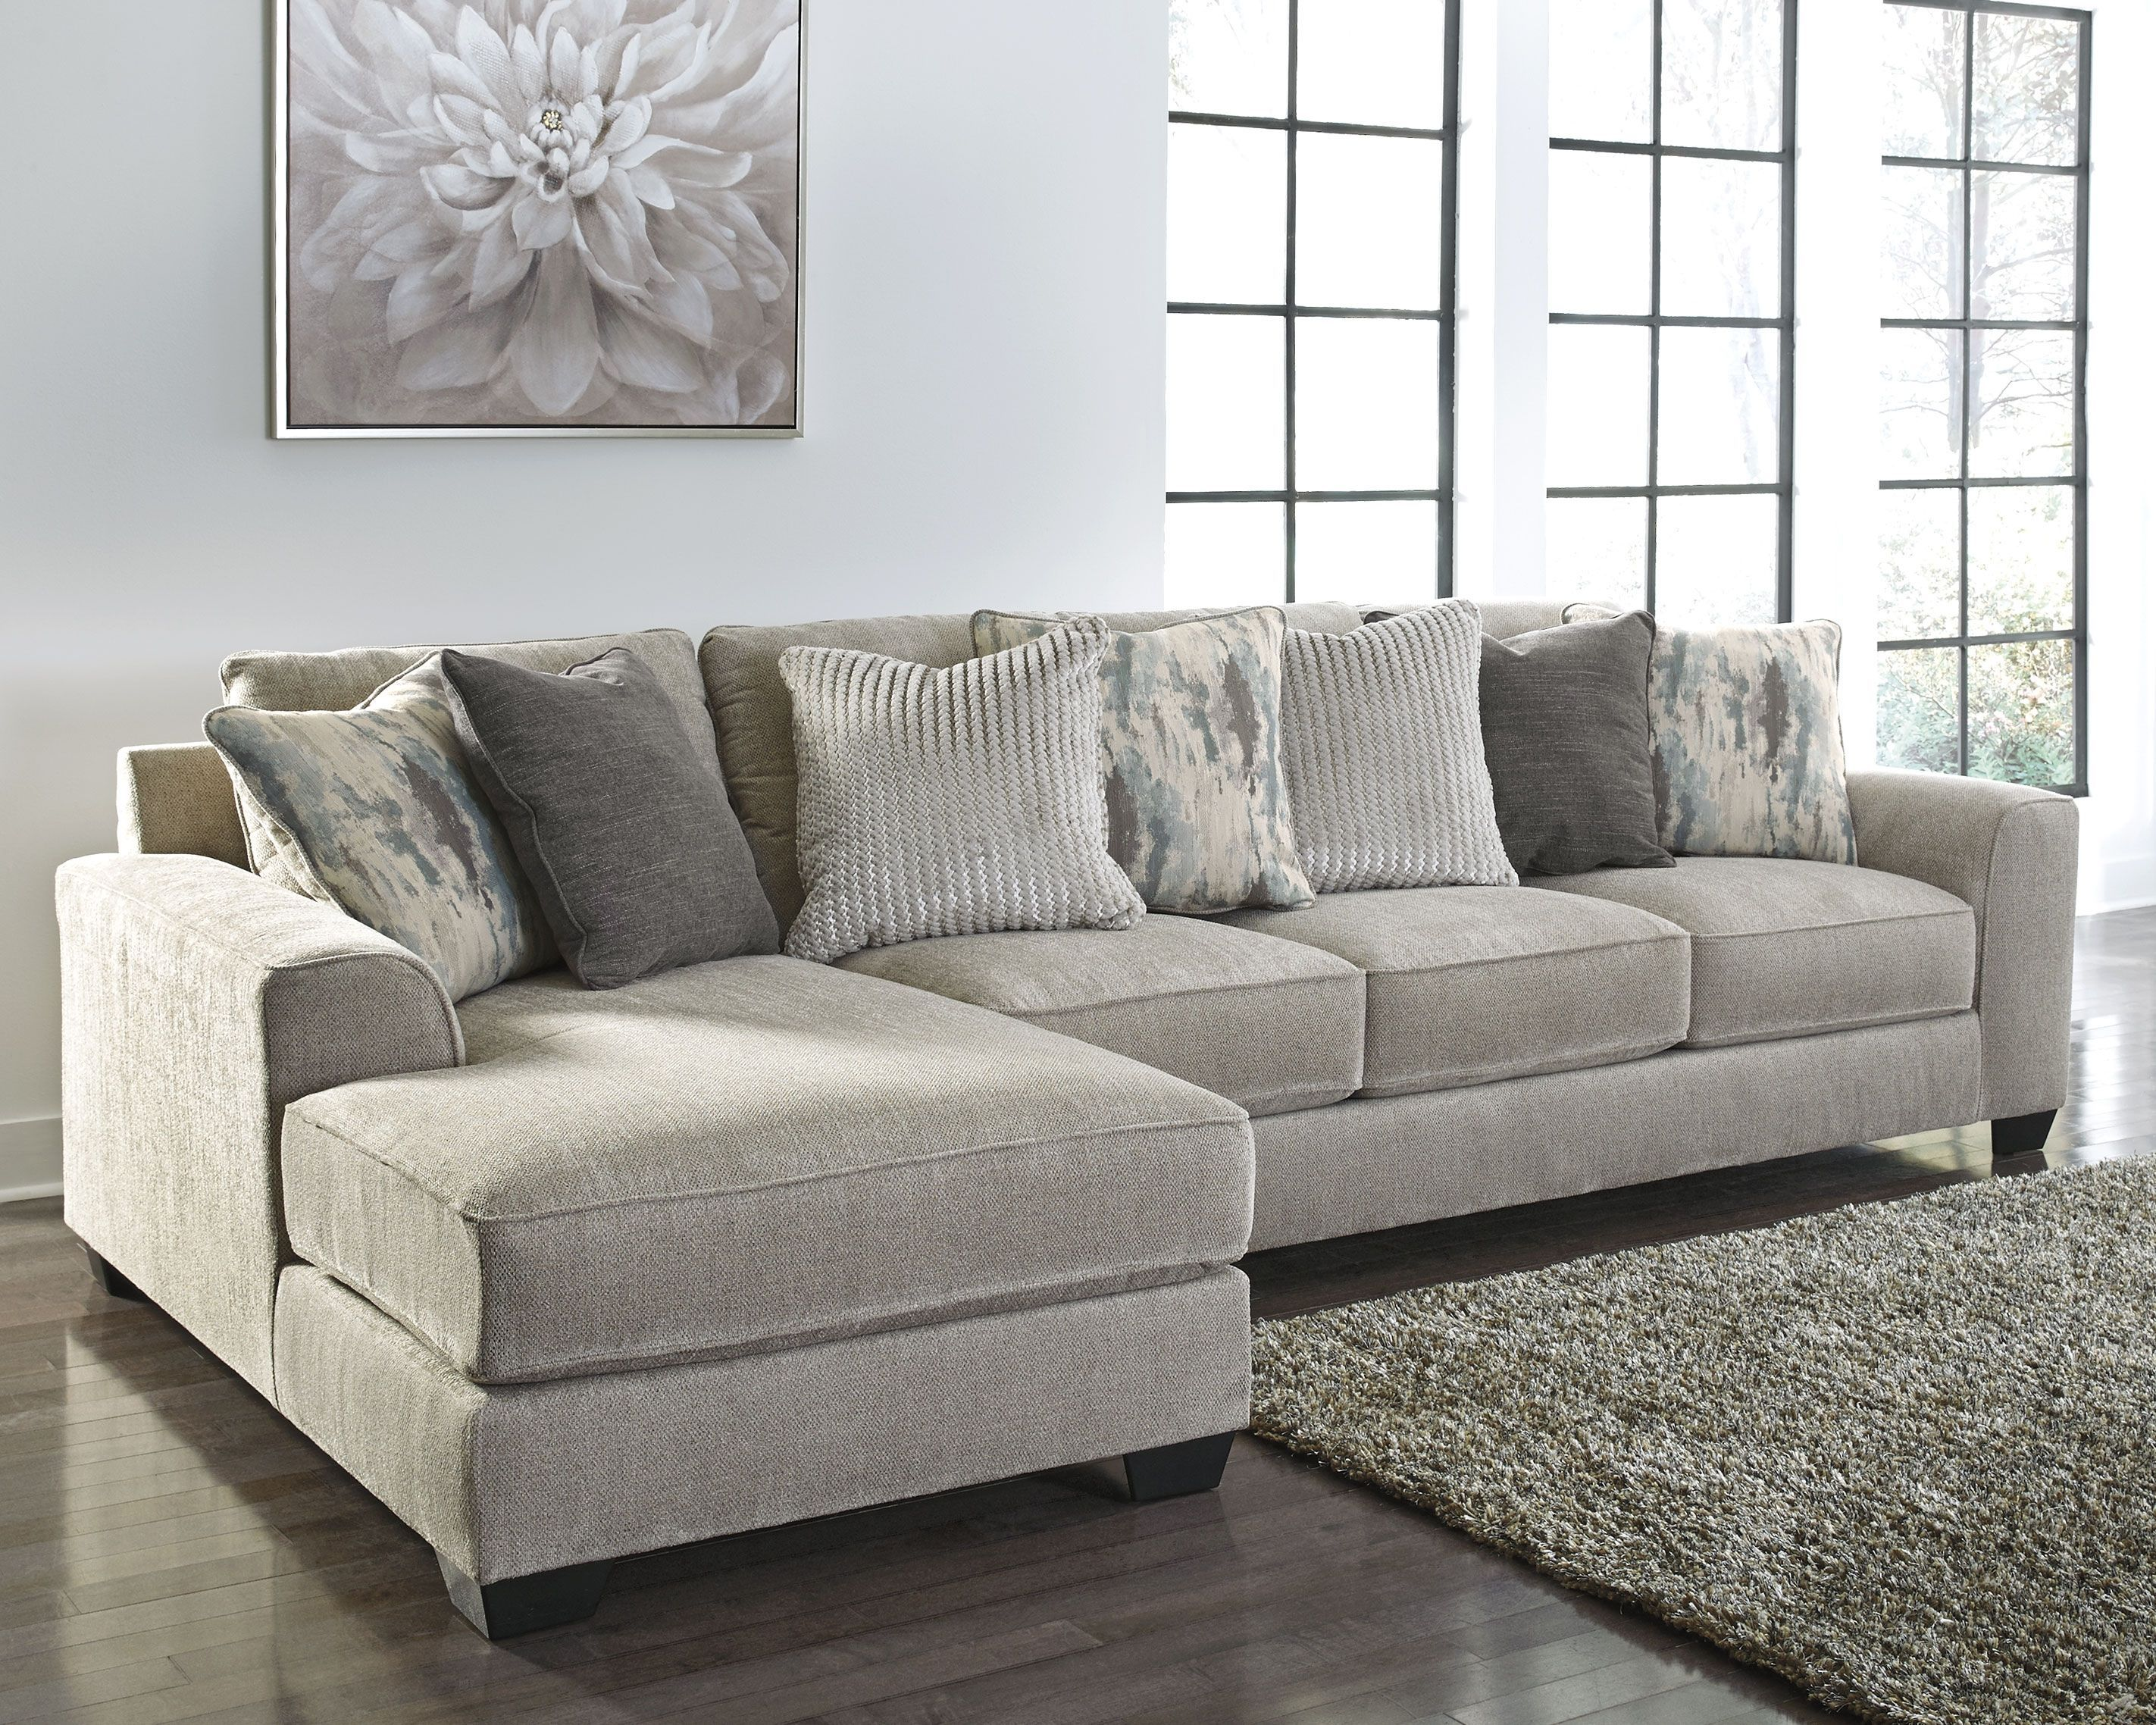 Ardsley Pewter Laf Corner Chaise Raf Sofa Sectional In 2020